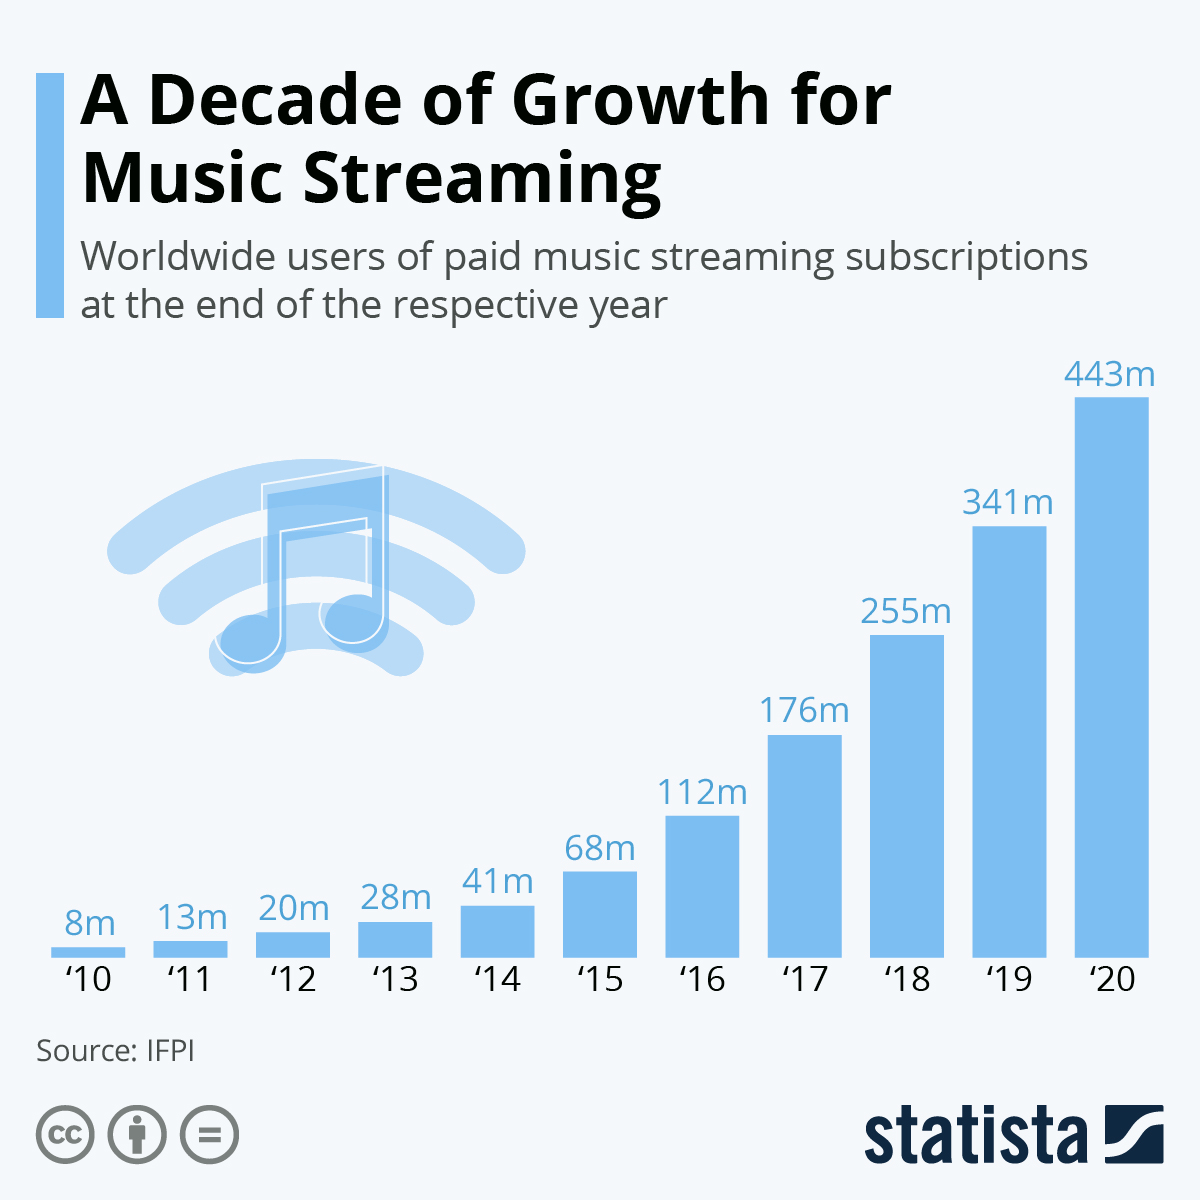 A decade of growth in music streaming